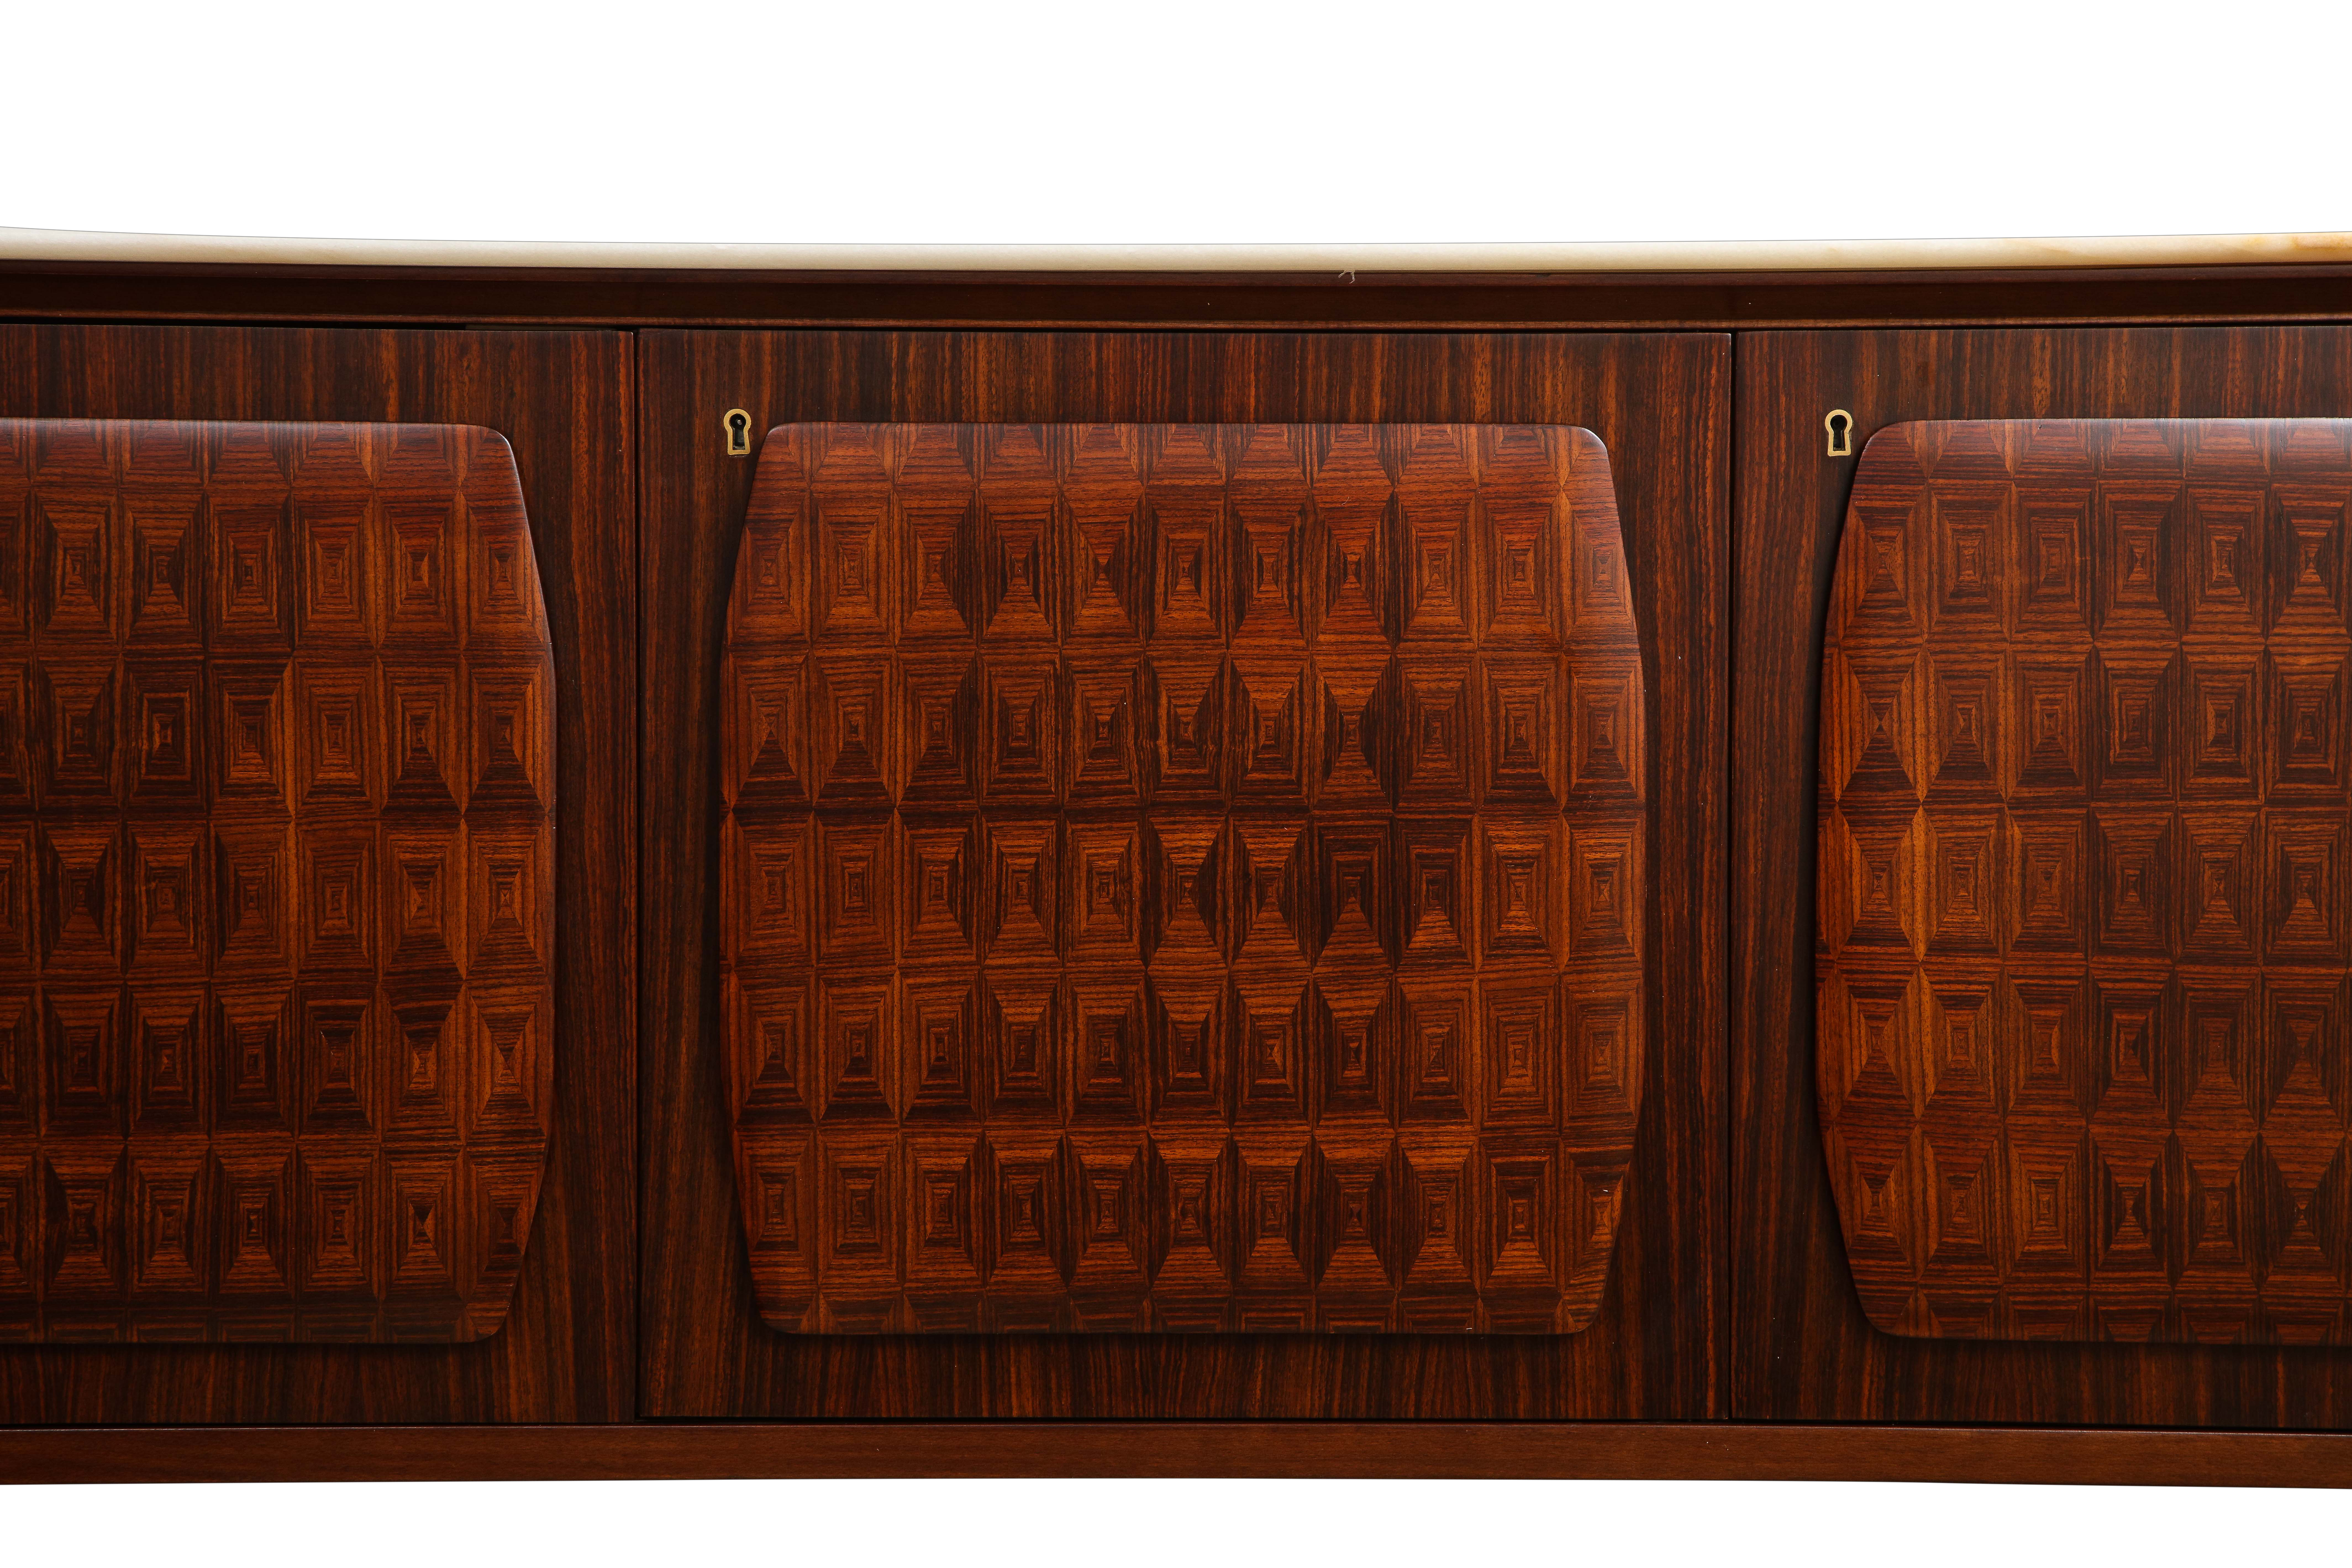 Mid Century Modern sideboard - Attributed to Ico Parisi, 1950's.